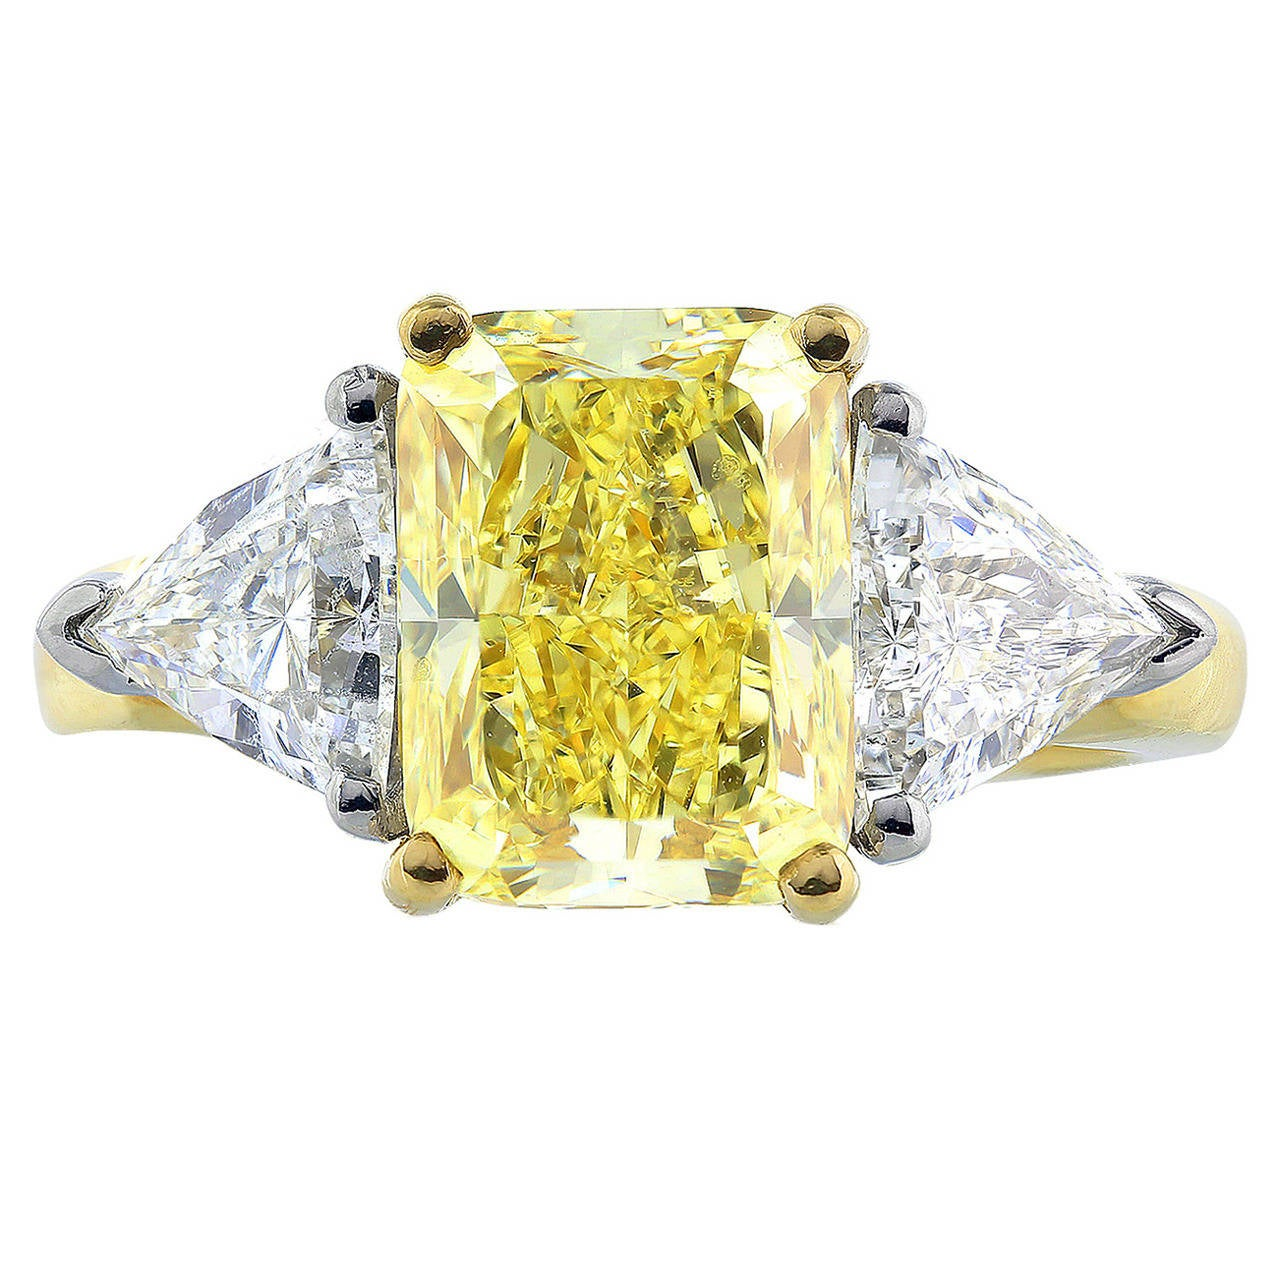 4.01 Carat Radiant Cut Canary Diamond Engagement Ring